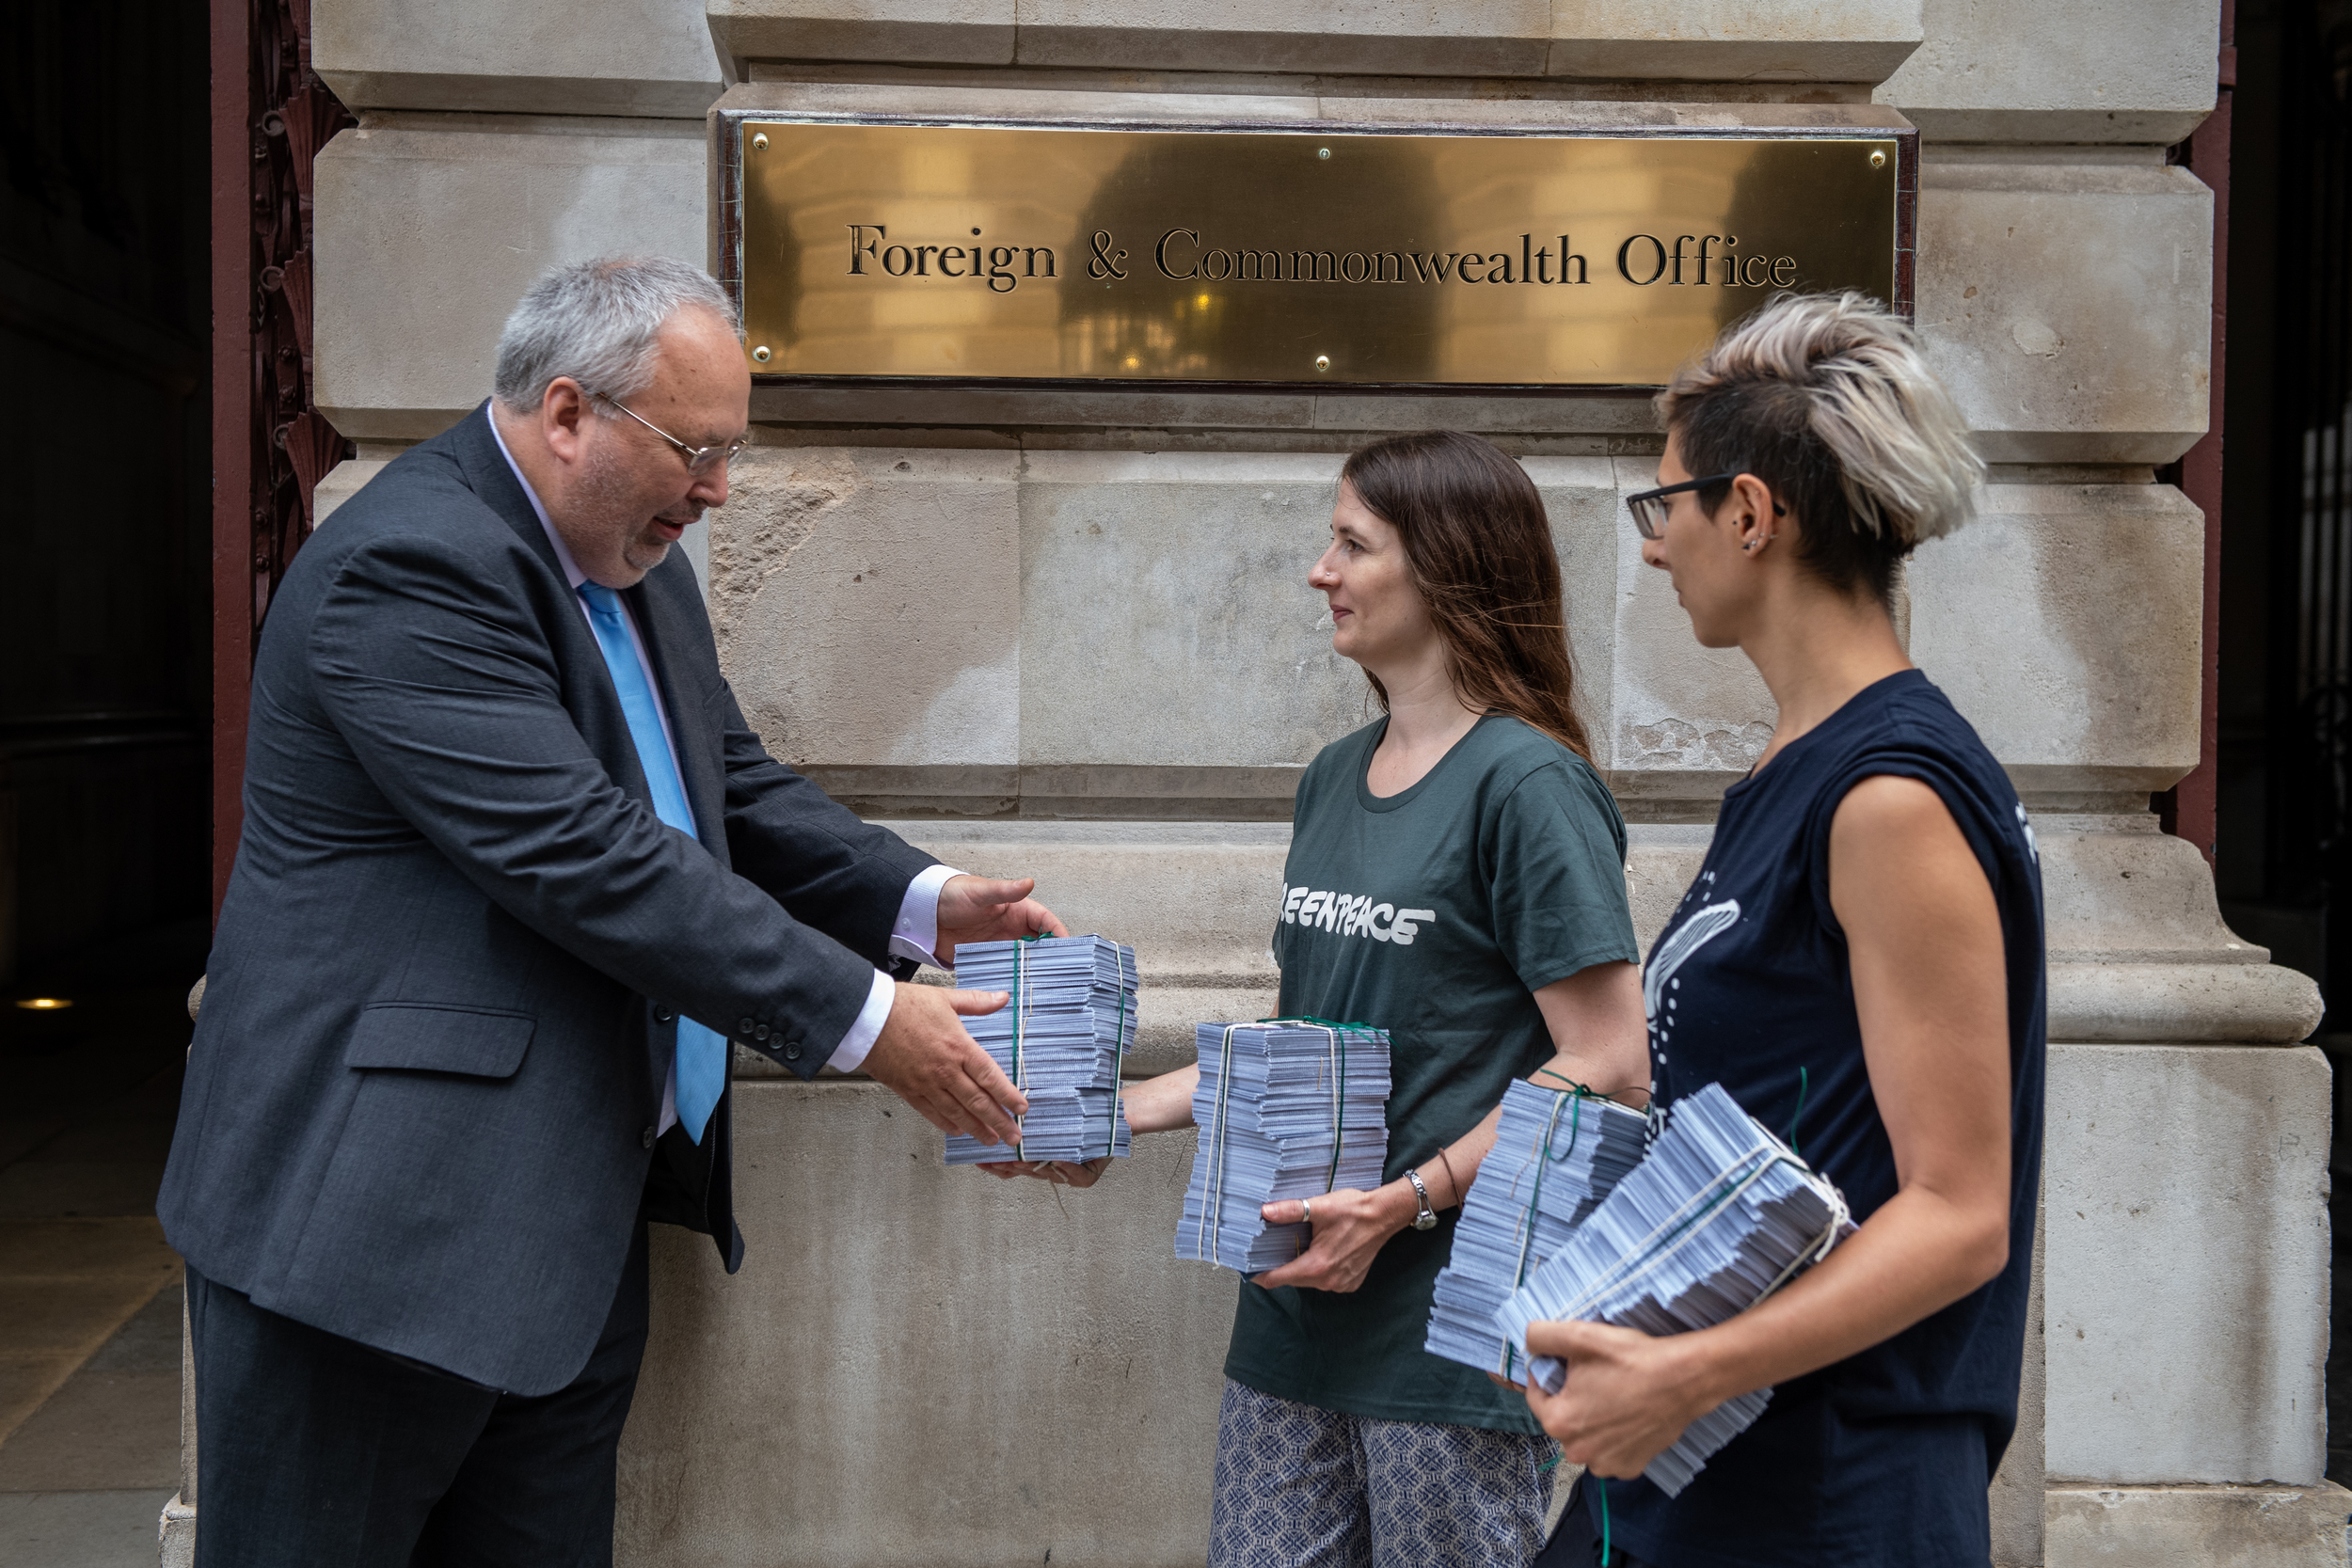 Local group campaigners delivering piles of messages to a UK Foreign Office official outside his office